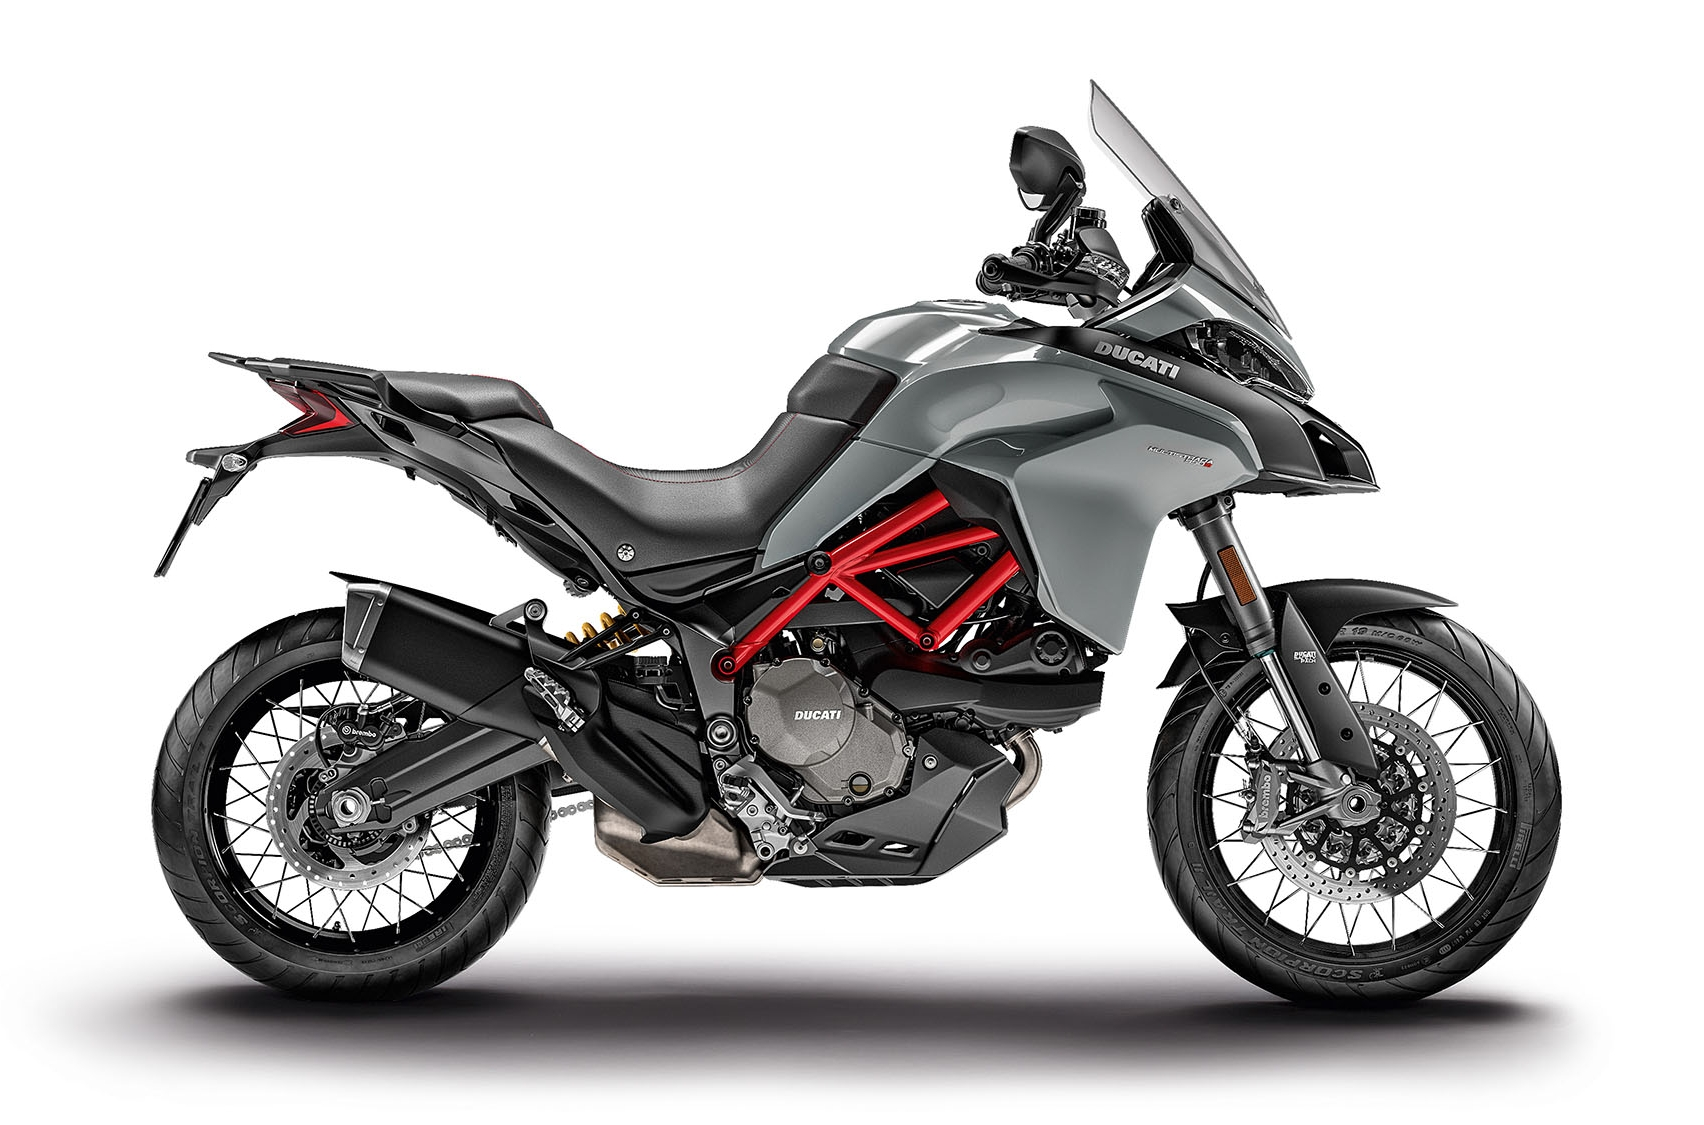 Multistrada 950 S Shown in Glossy Grey with tubeless wheels/tires